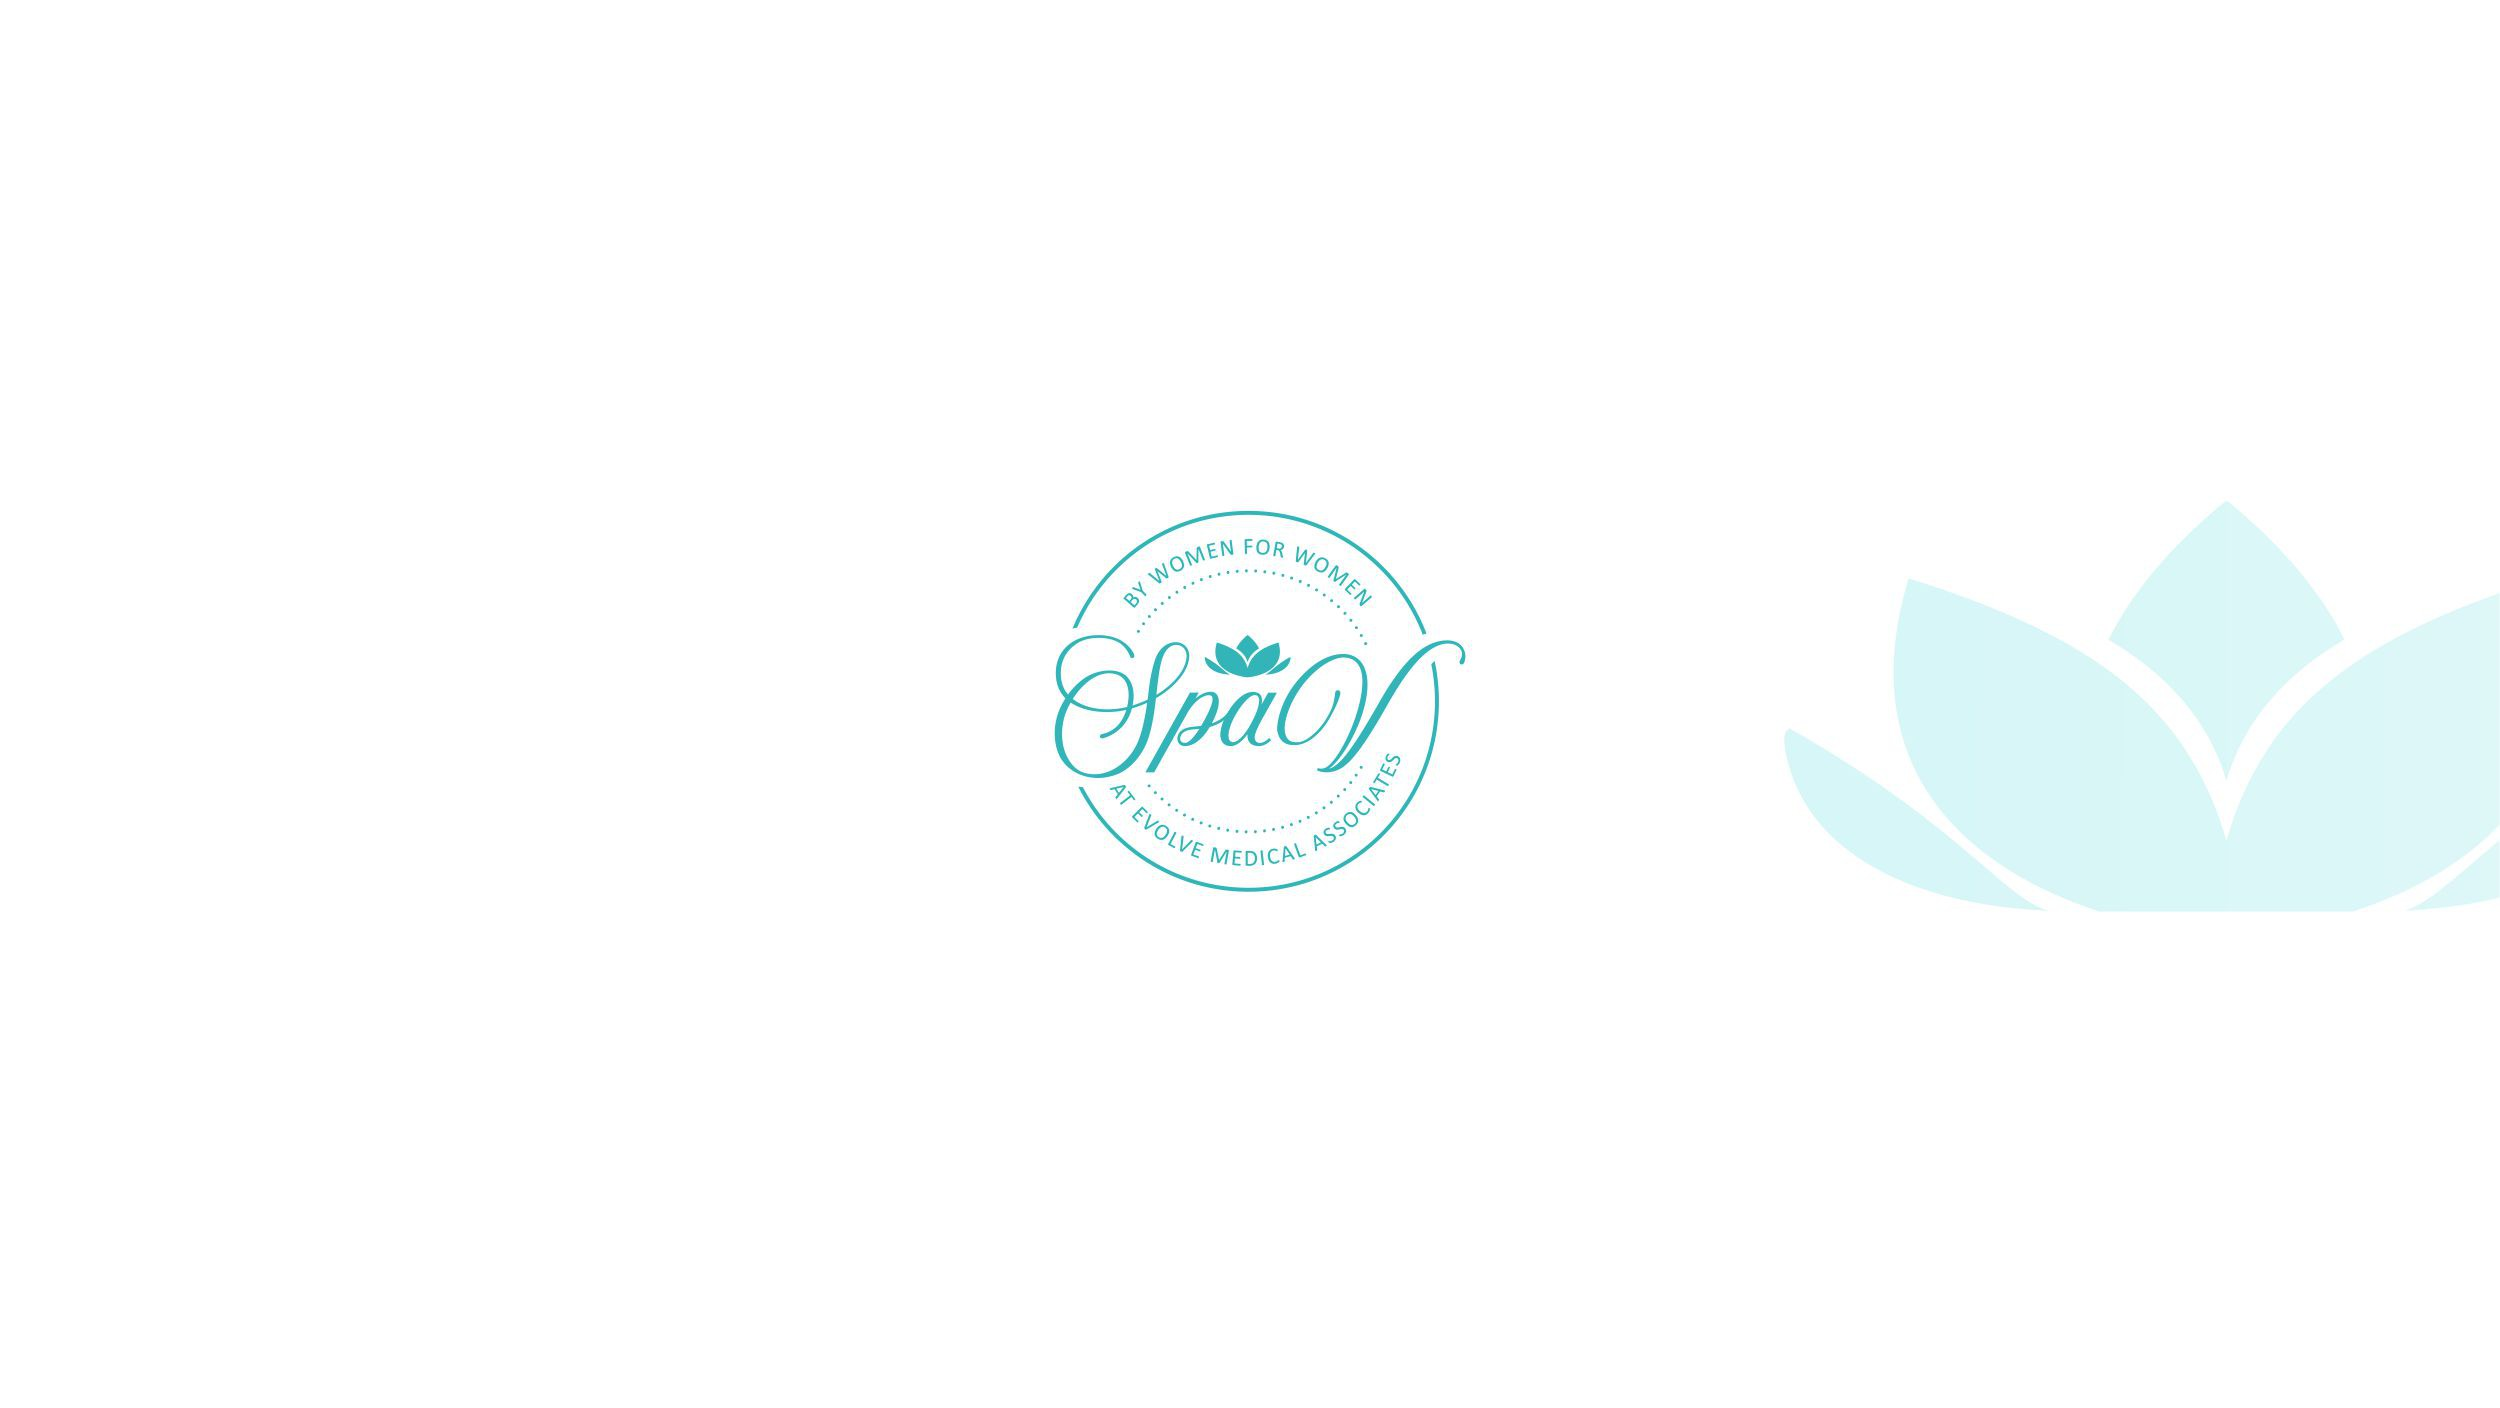 Medical spa, by women for women, need a logo